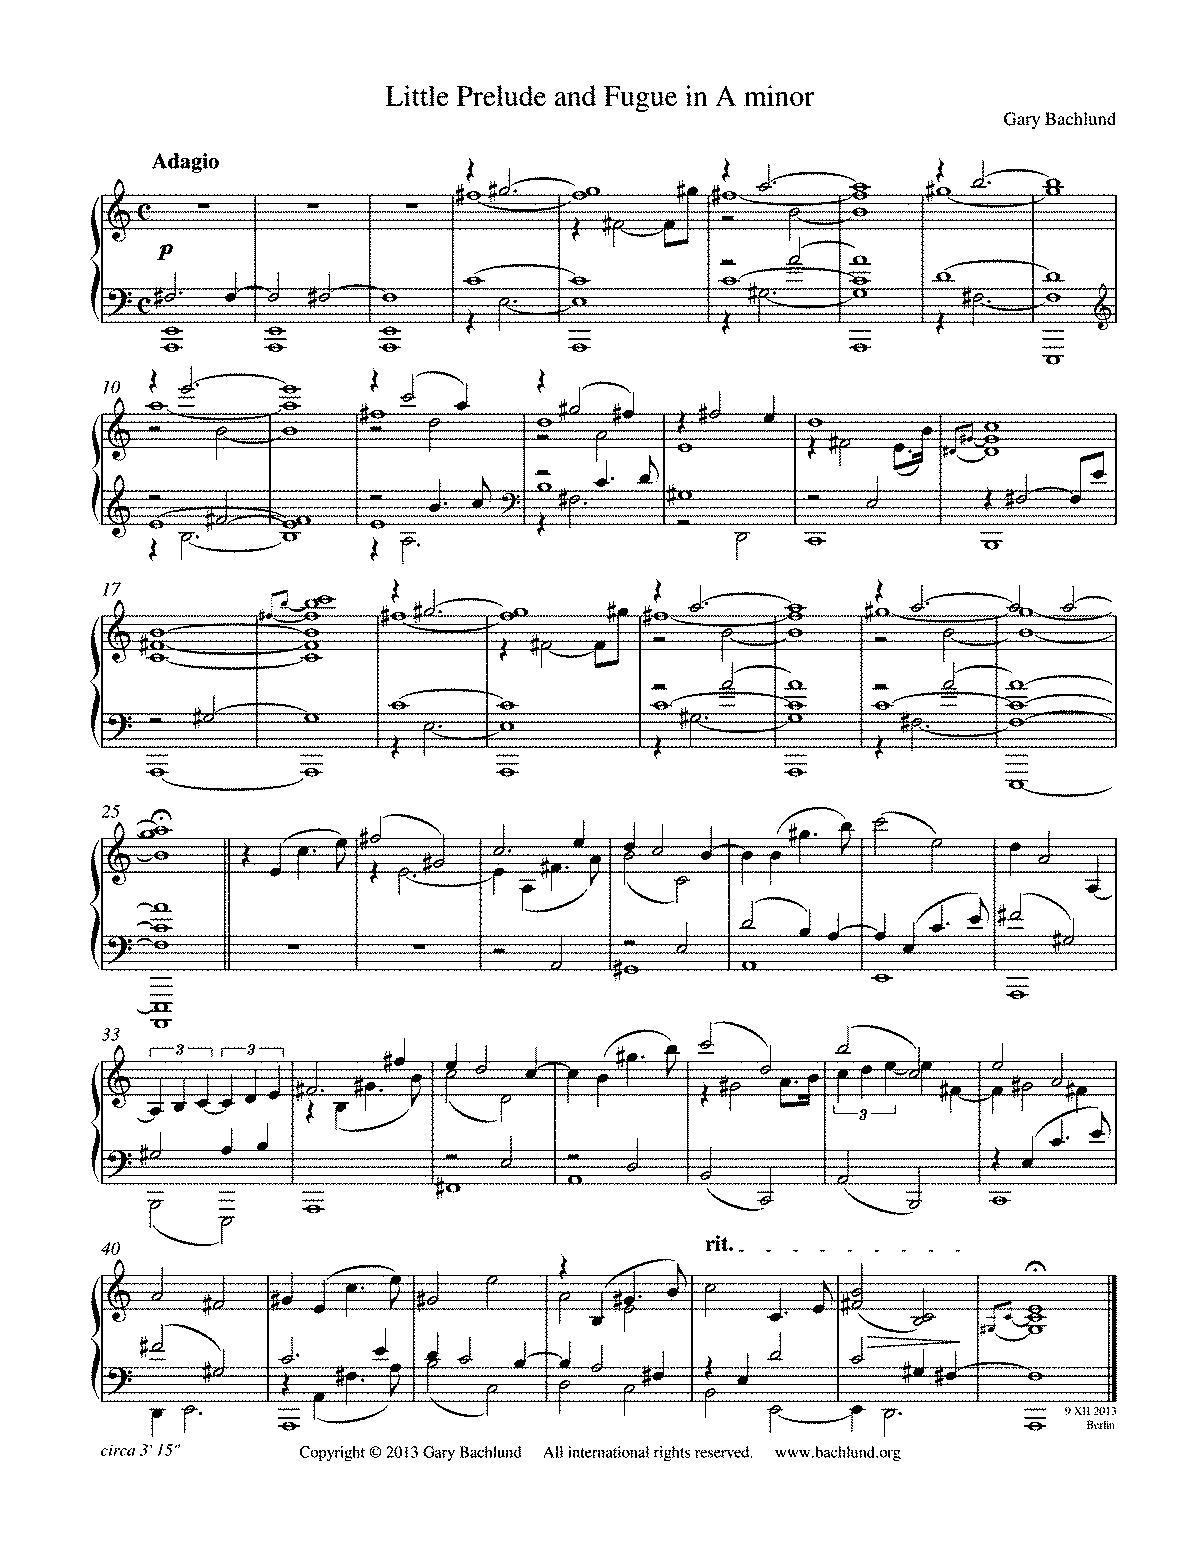 PMLP518092-Little Prelude and Fugue in A minor.pdf